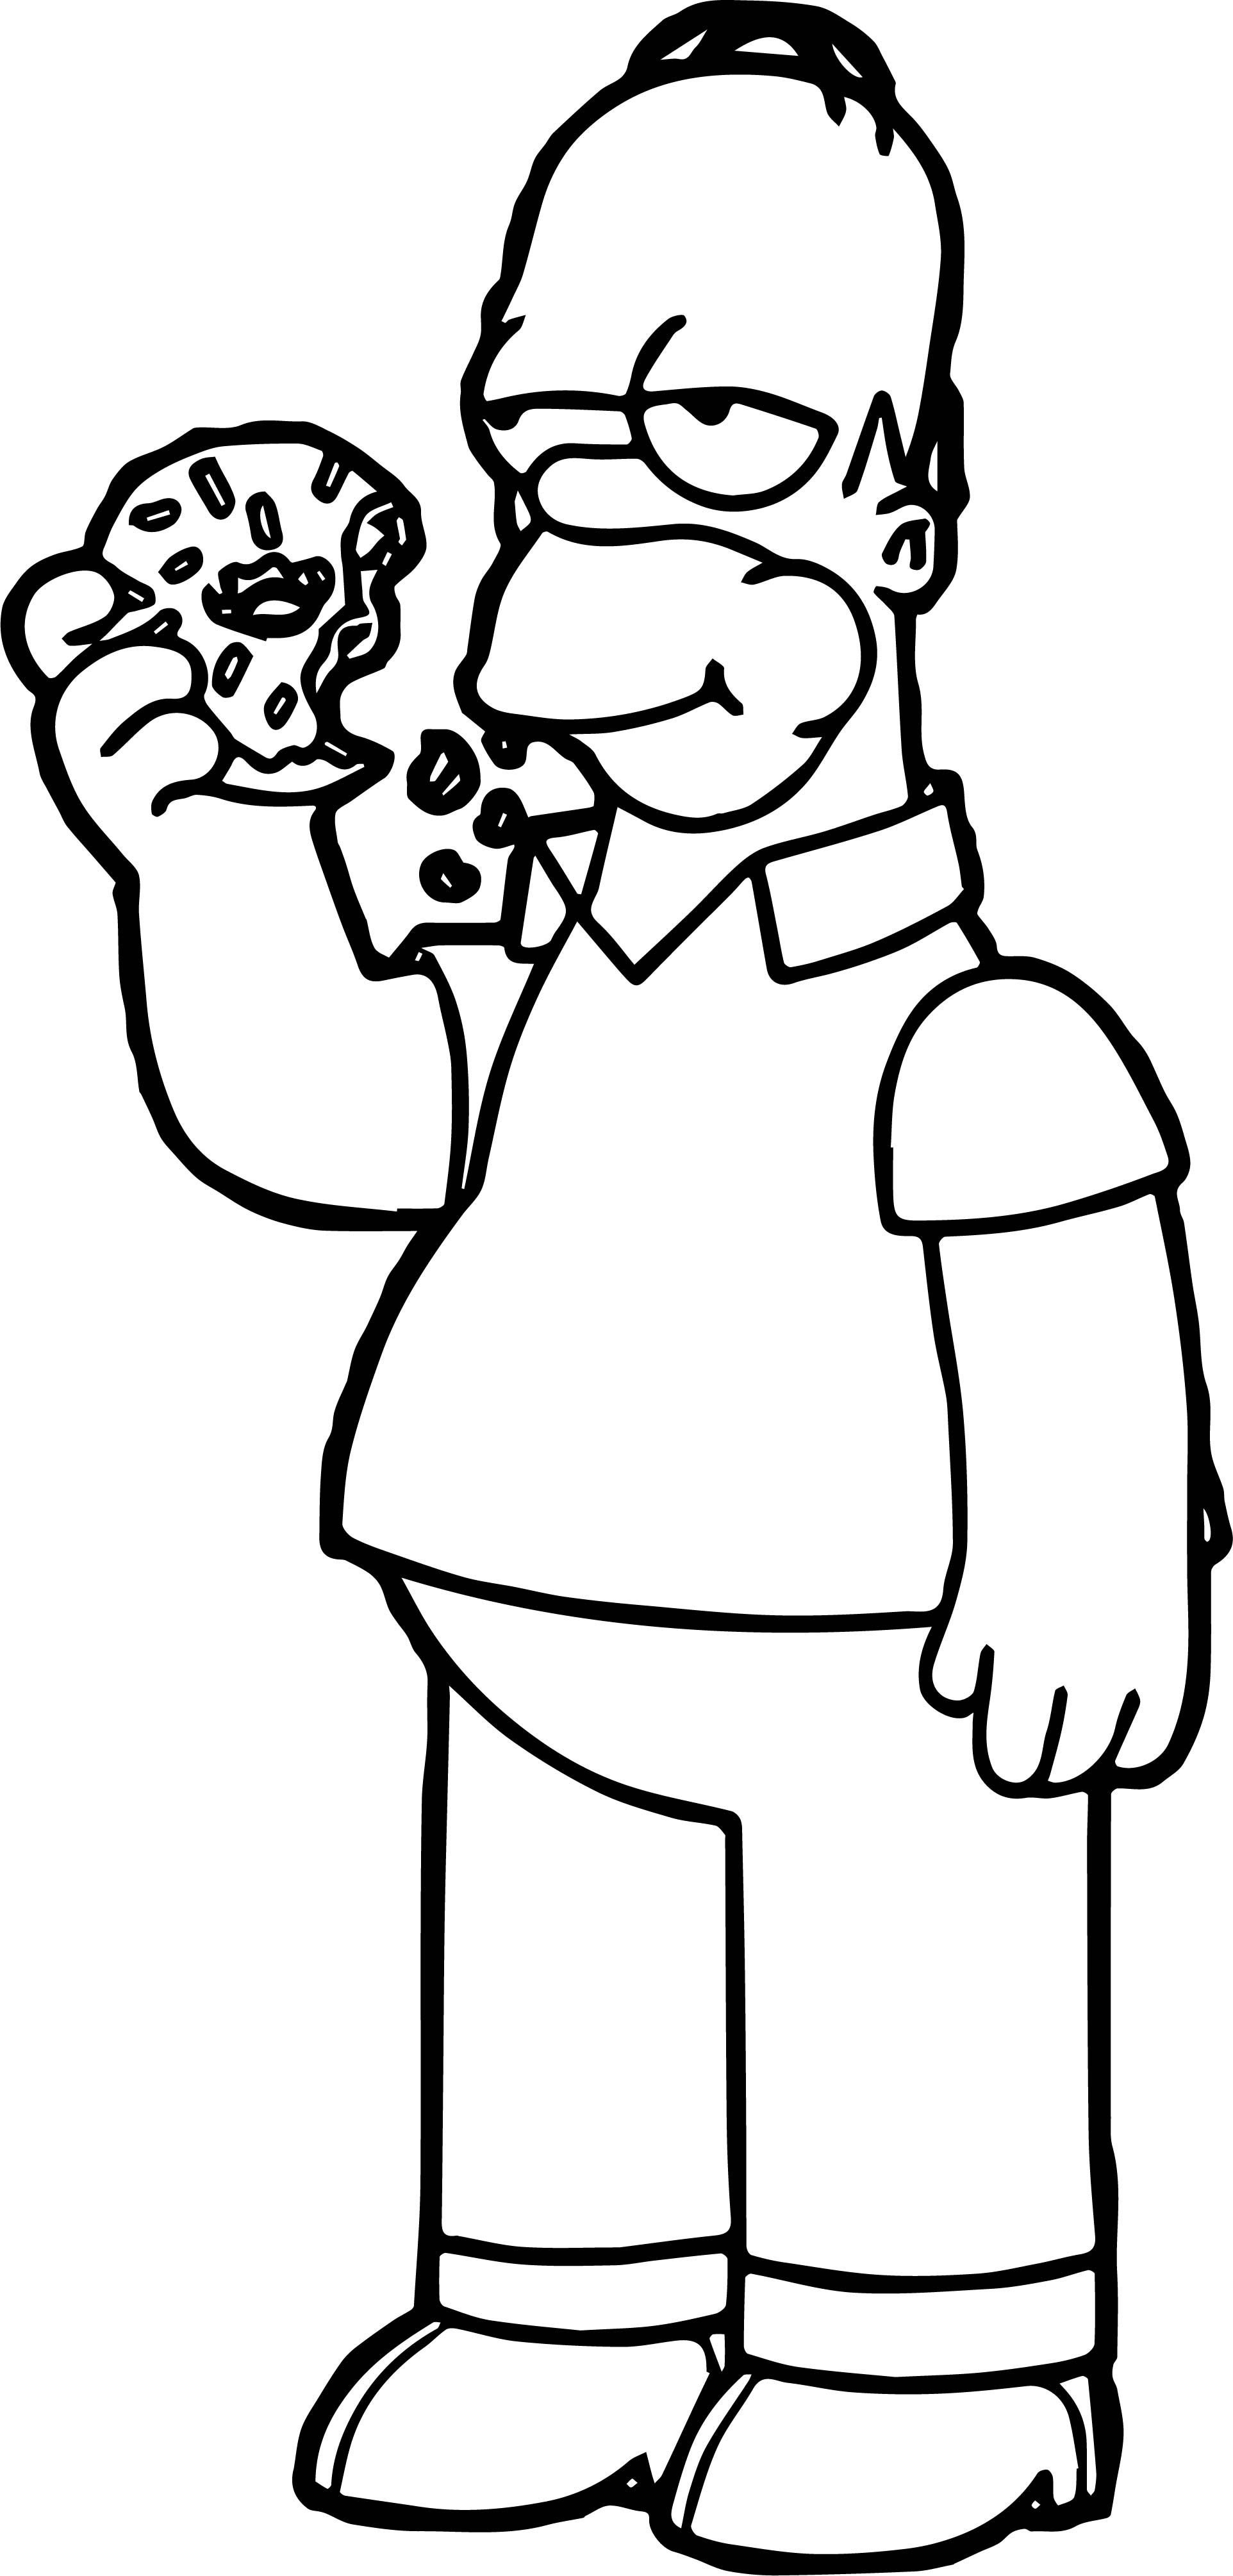 coloring simpsons the simpsons coloring pages download and print the simpsons coloring 1 1